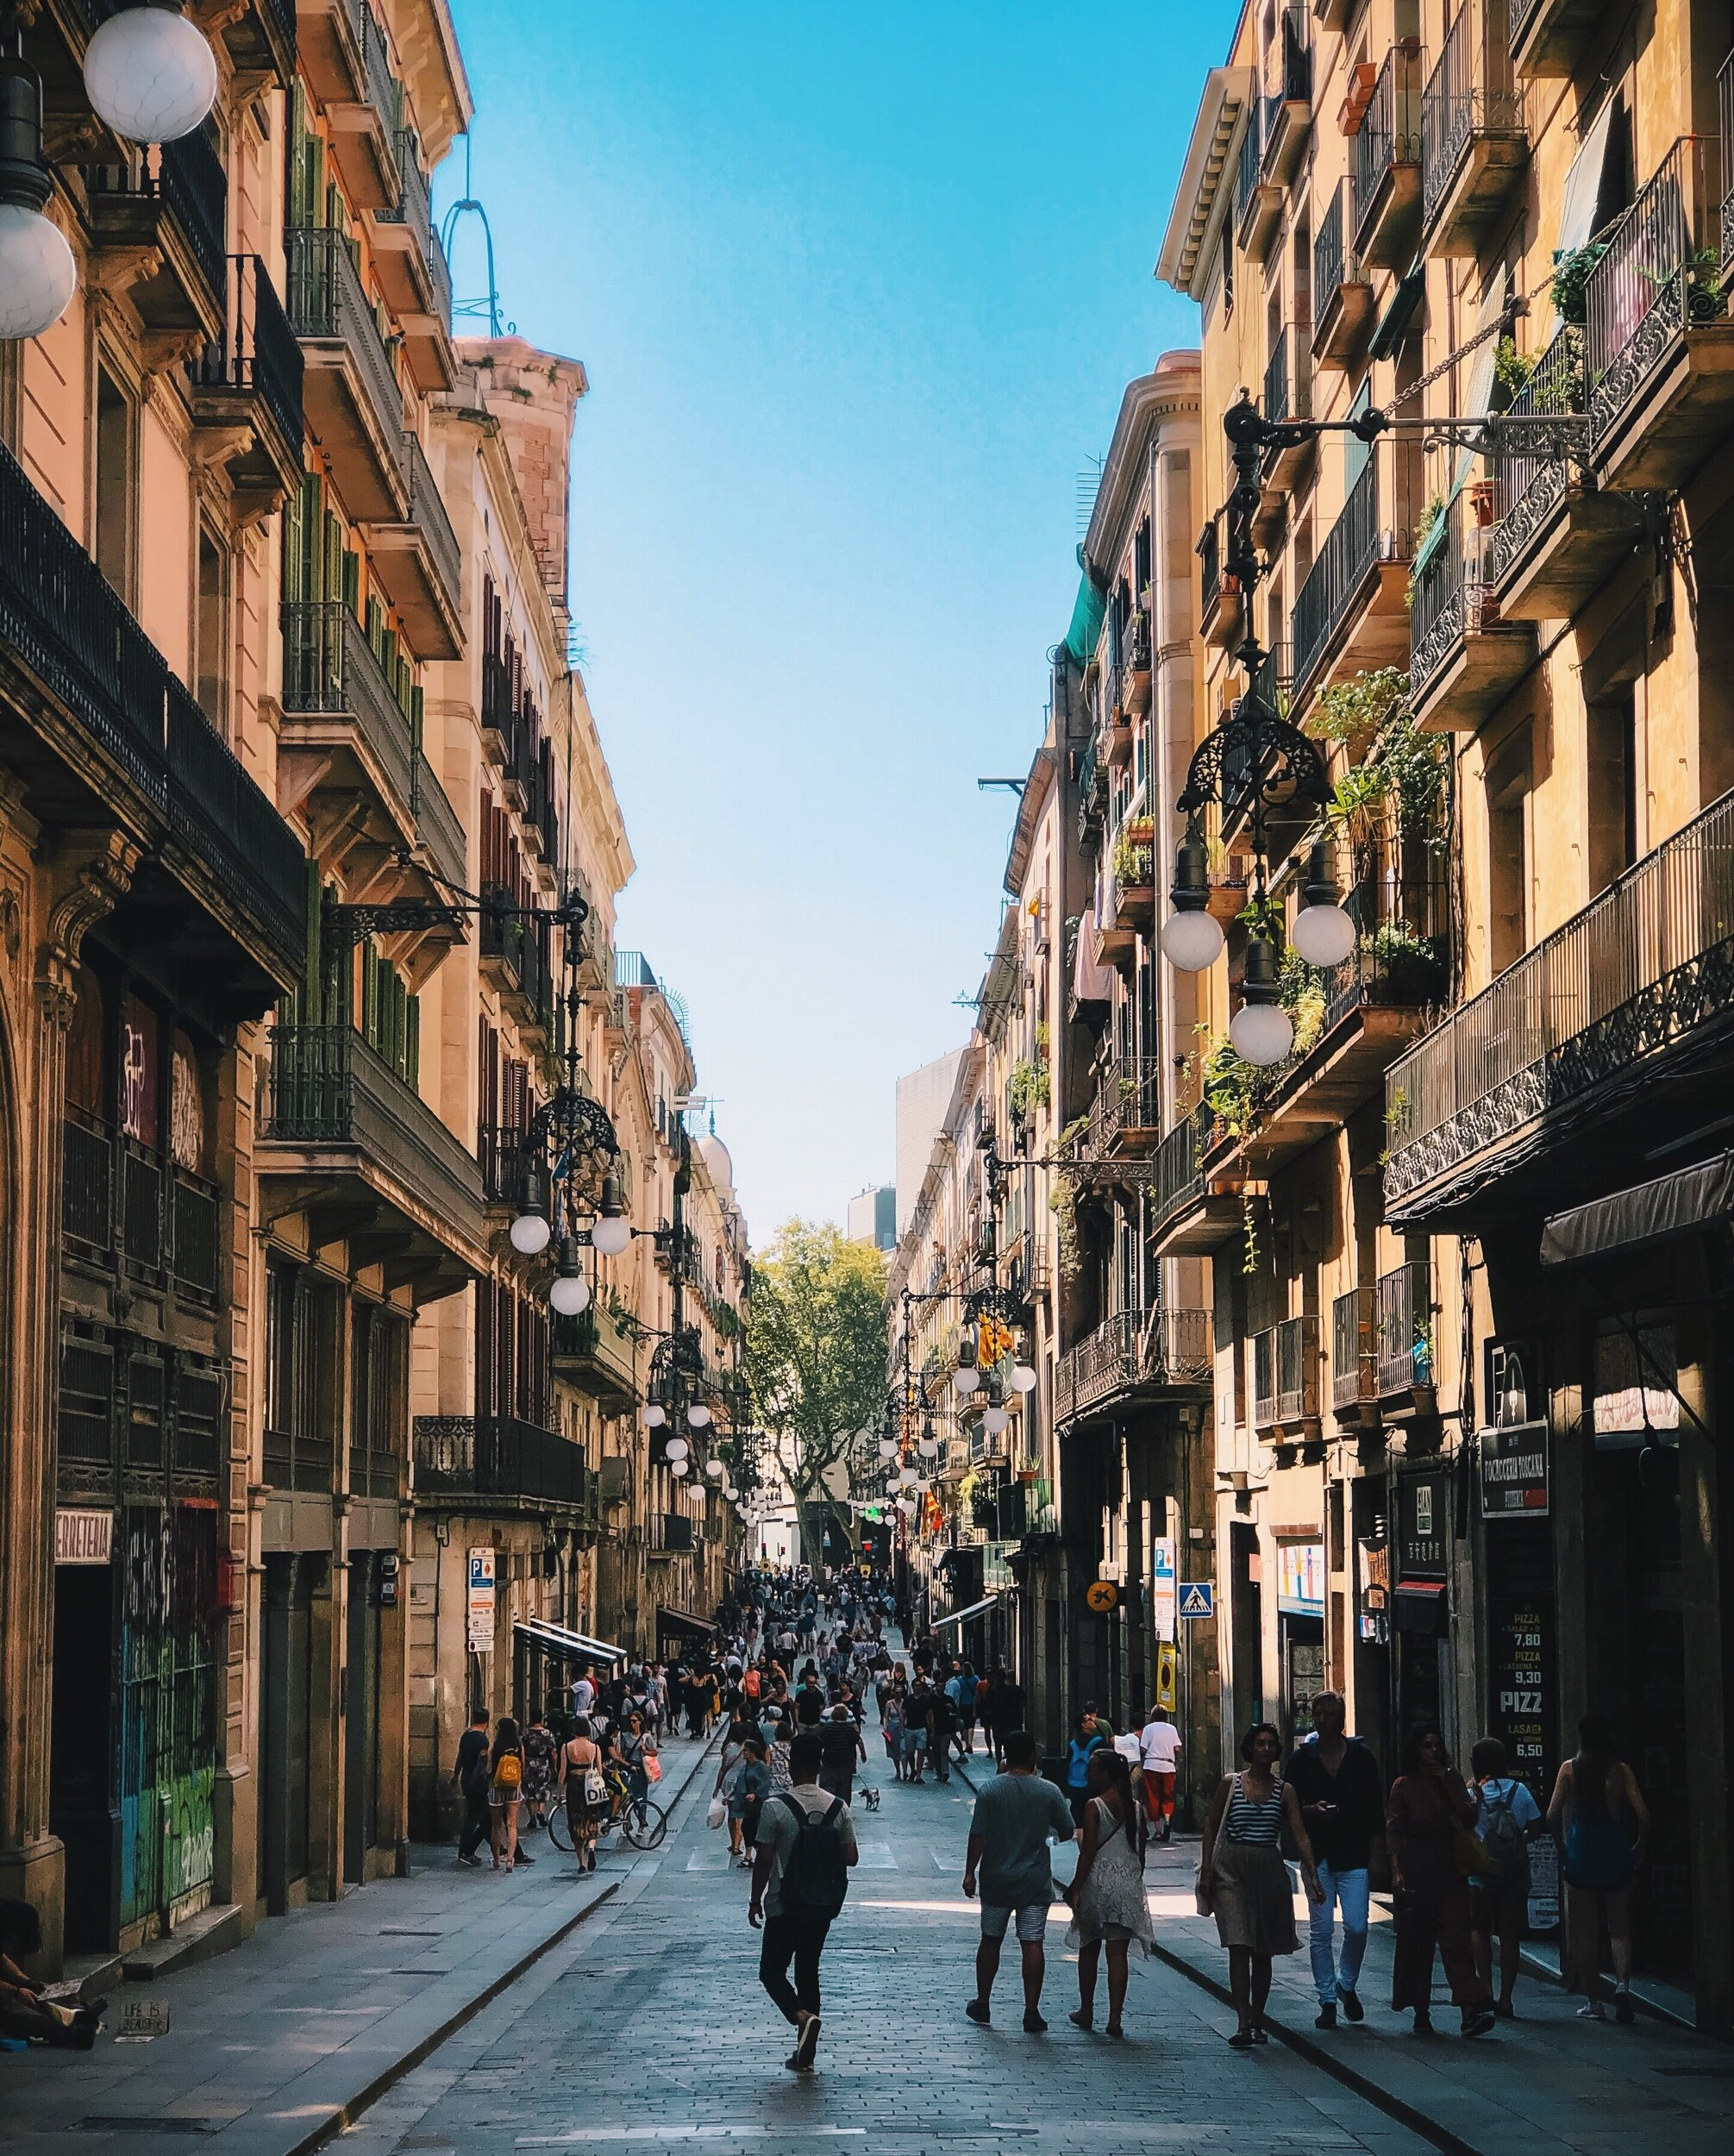 A photo from my first day of classes last week, fall in Barcelona looks a lot different than any other place we've lived in. The knowledge depression is approaching makes the transition from vibrant summer to the beautiful decay of autumn bittersweet.